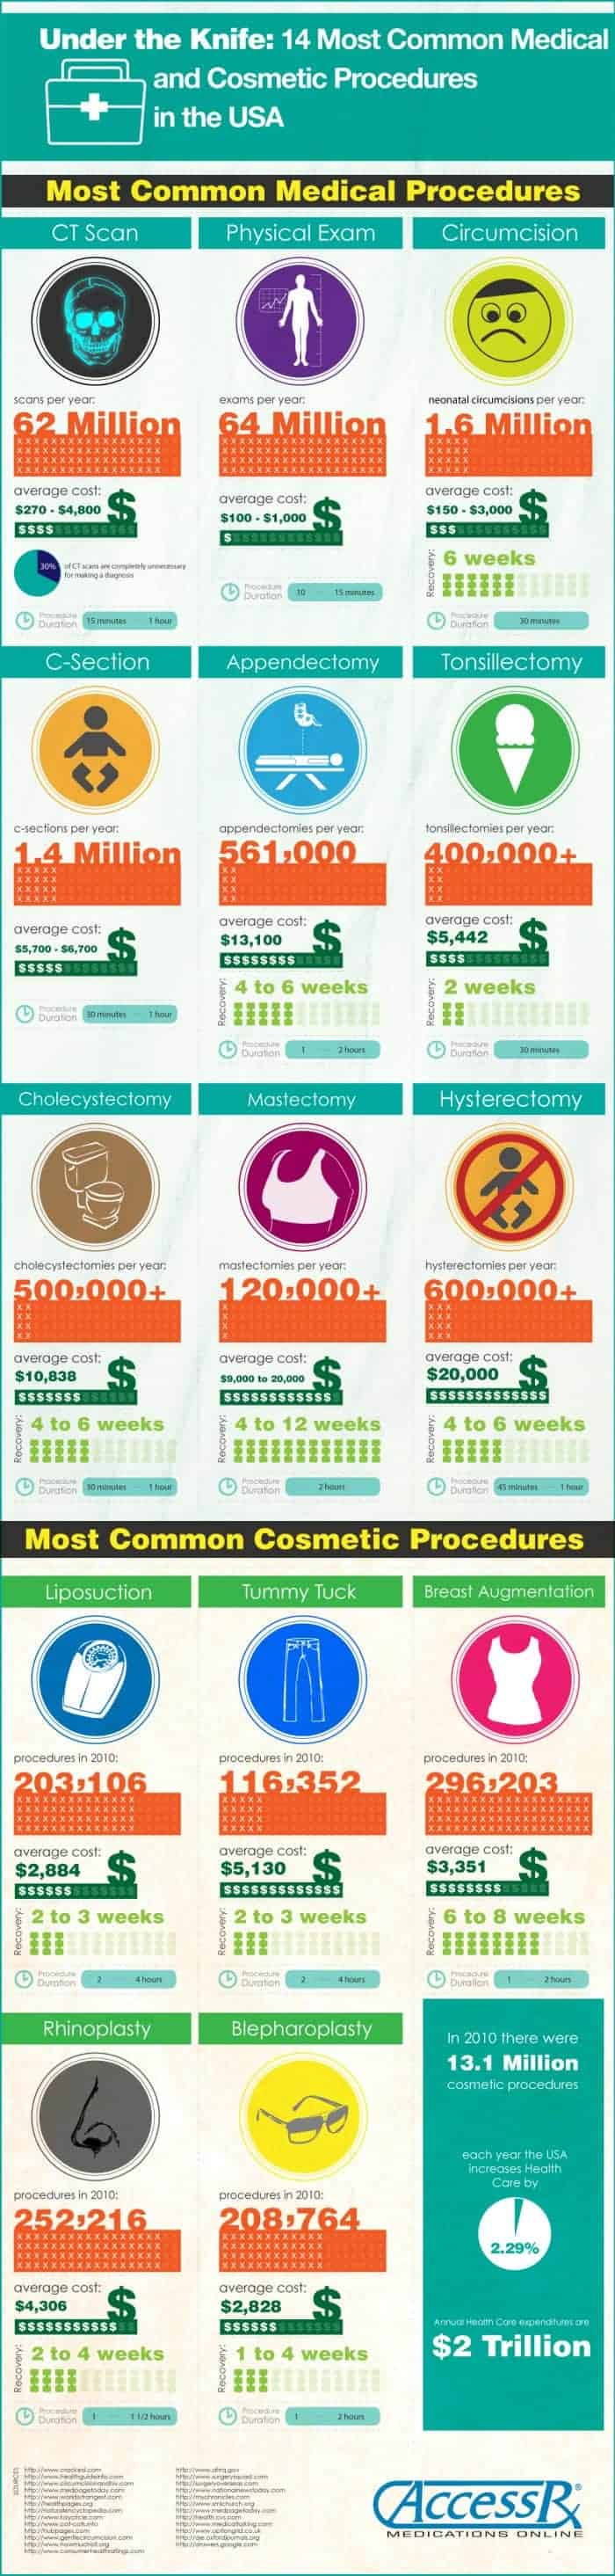 Medical Procedures USA Infographic